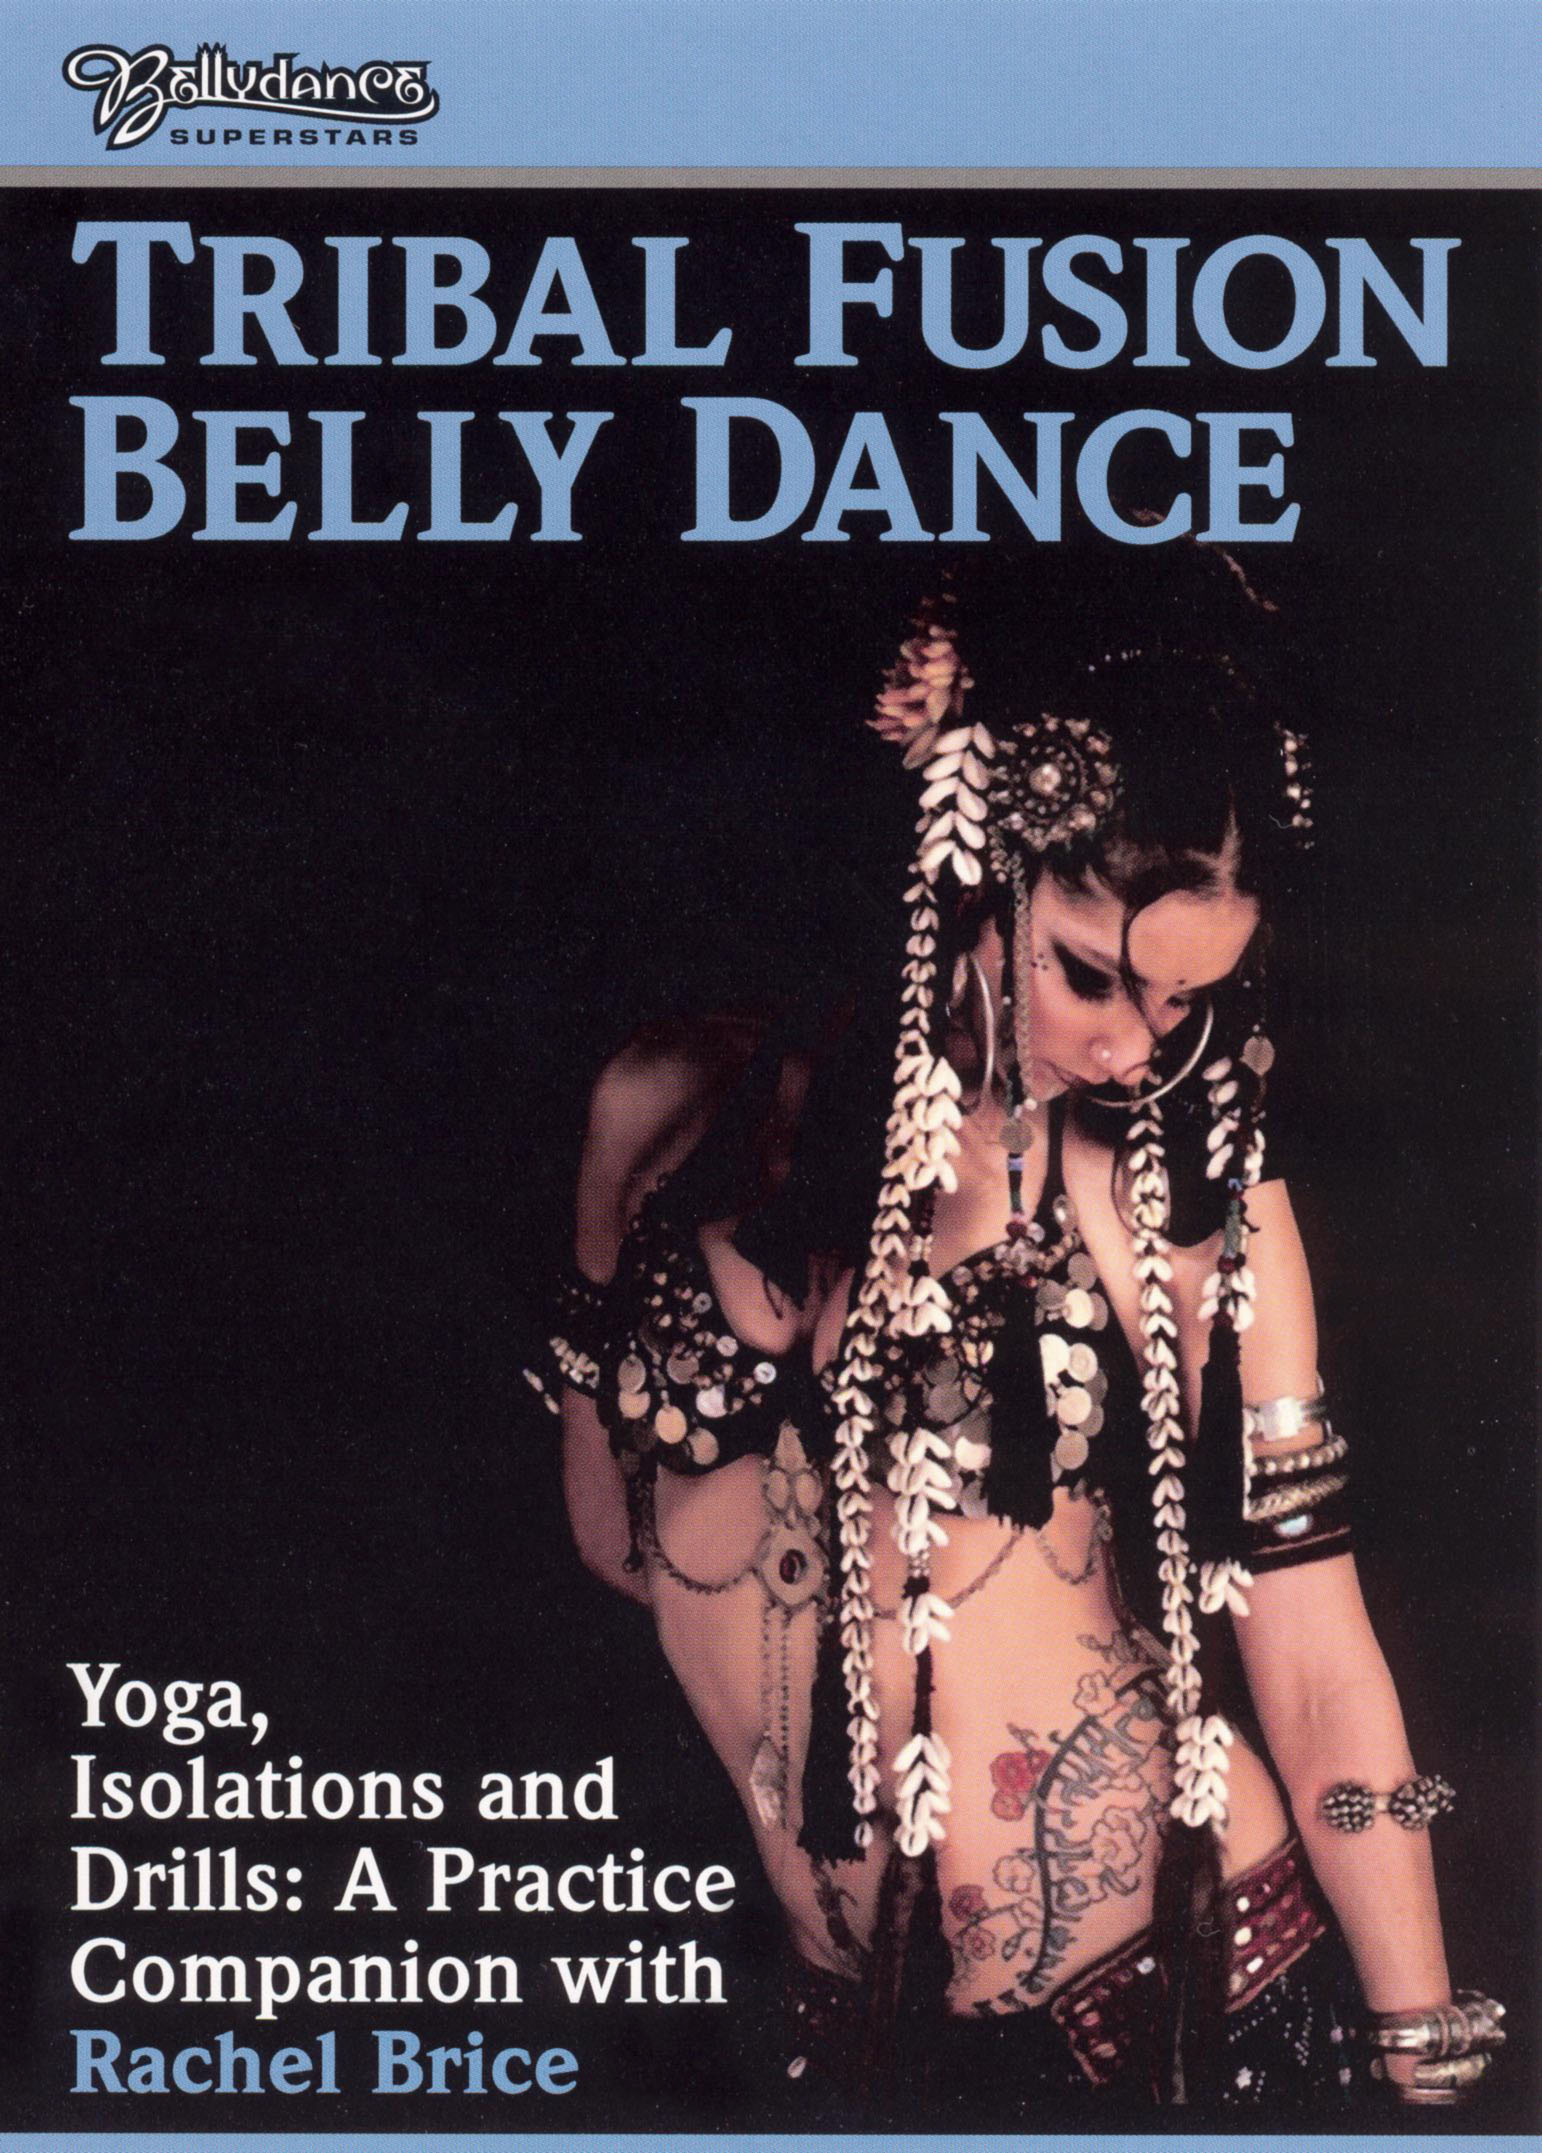 Tribal Fusion: Yoga, Isolations and Drills - A Practice Companion